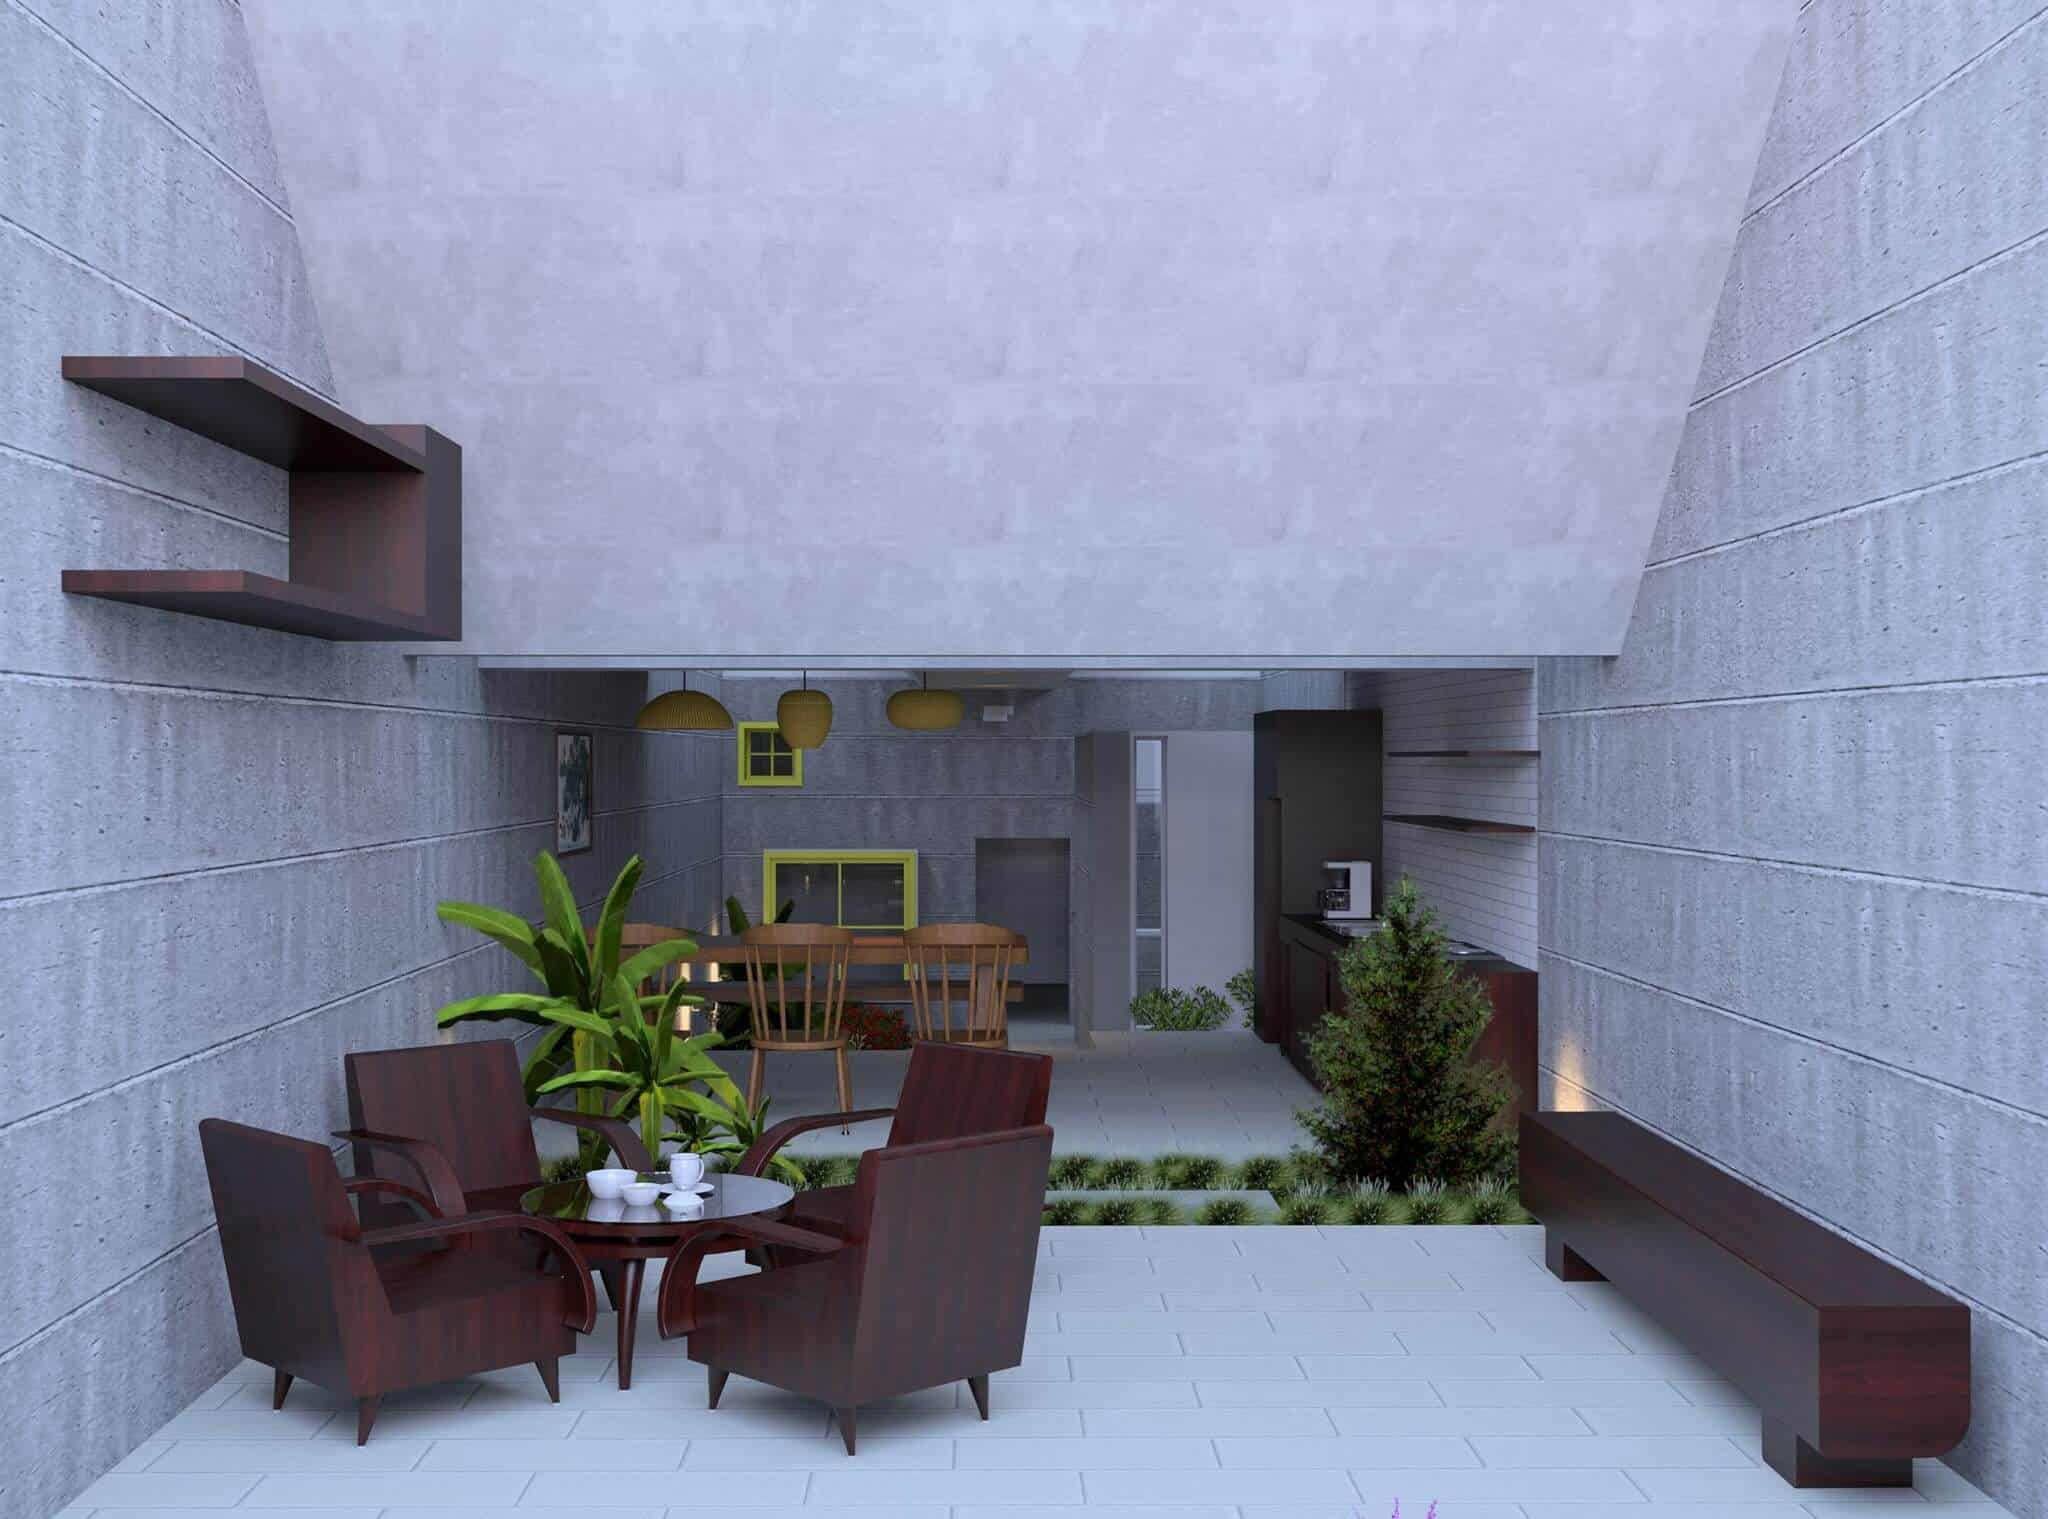 3d visualized rooms